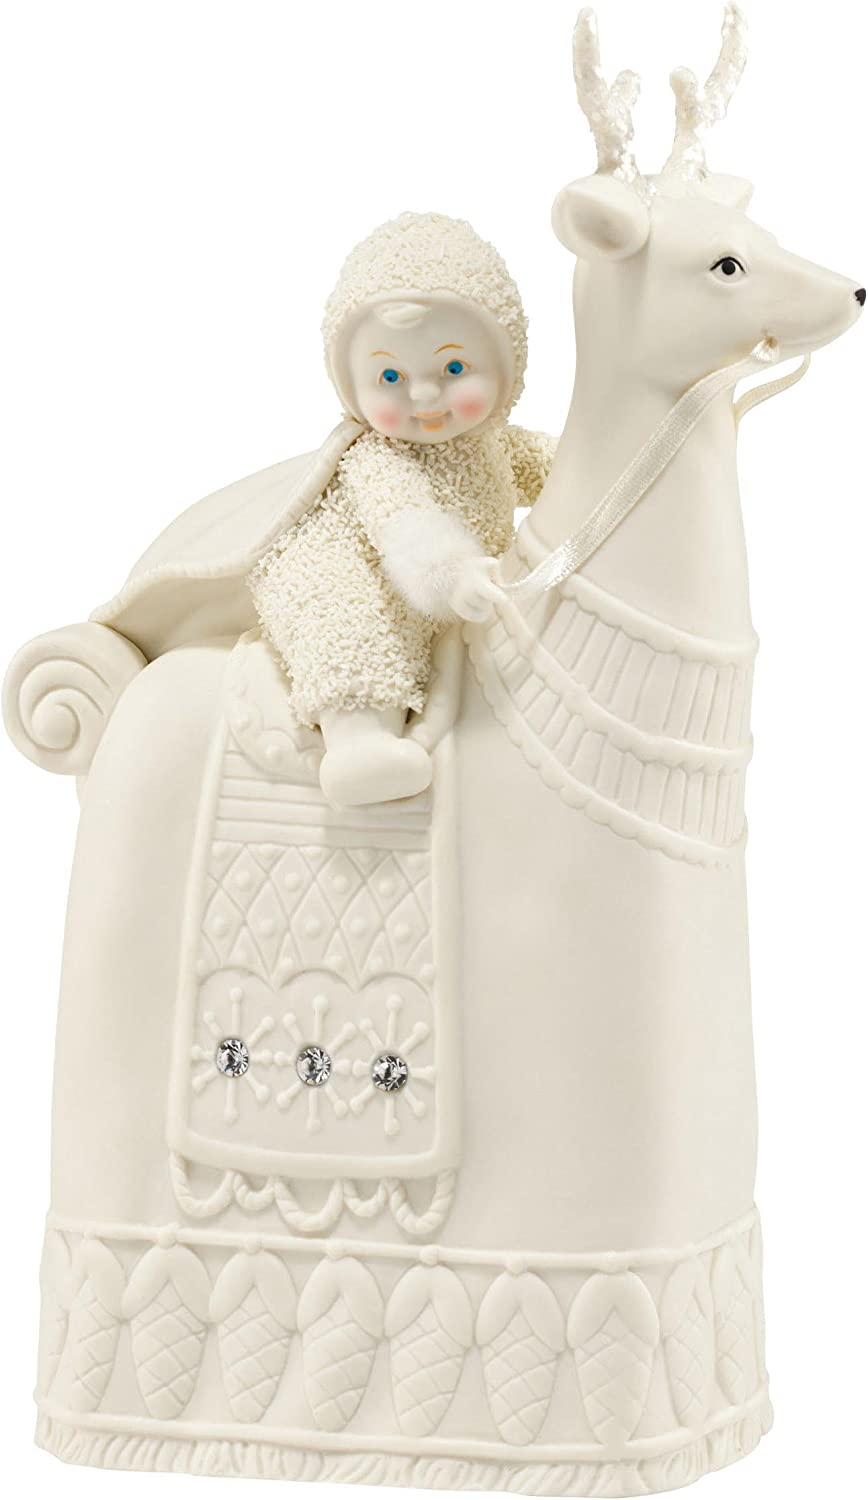 Department 56 Snowbabies Dream Reindeer Topics on TV Super beauty product restock quality top Collection Reigning The